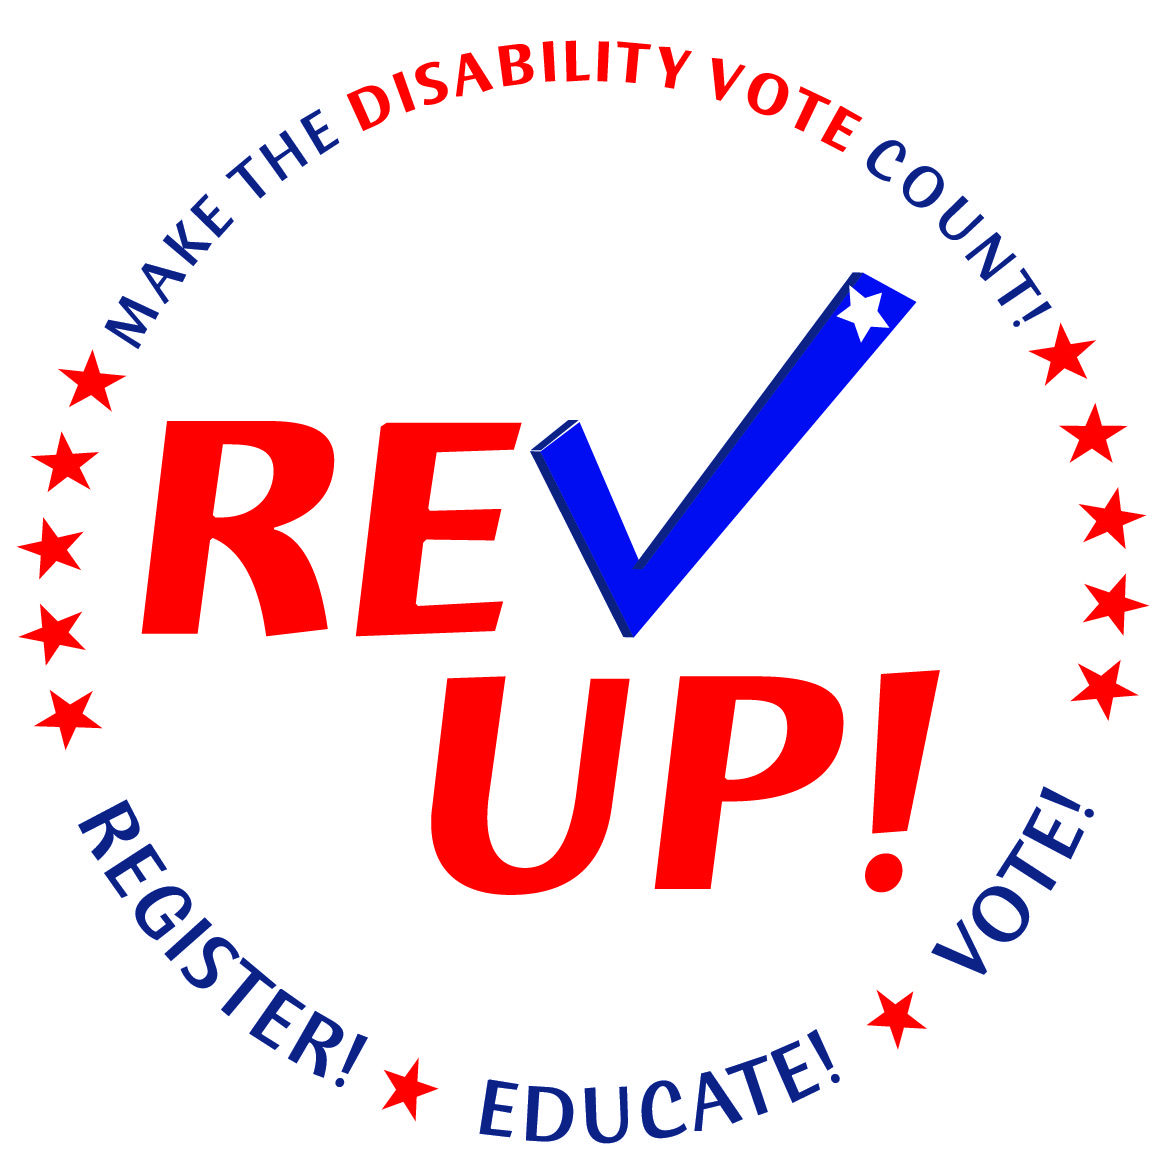 Make the disability vote count! Revup! Register! Educate! Vote!